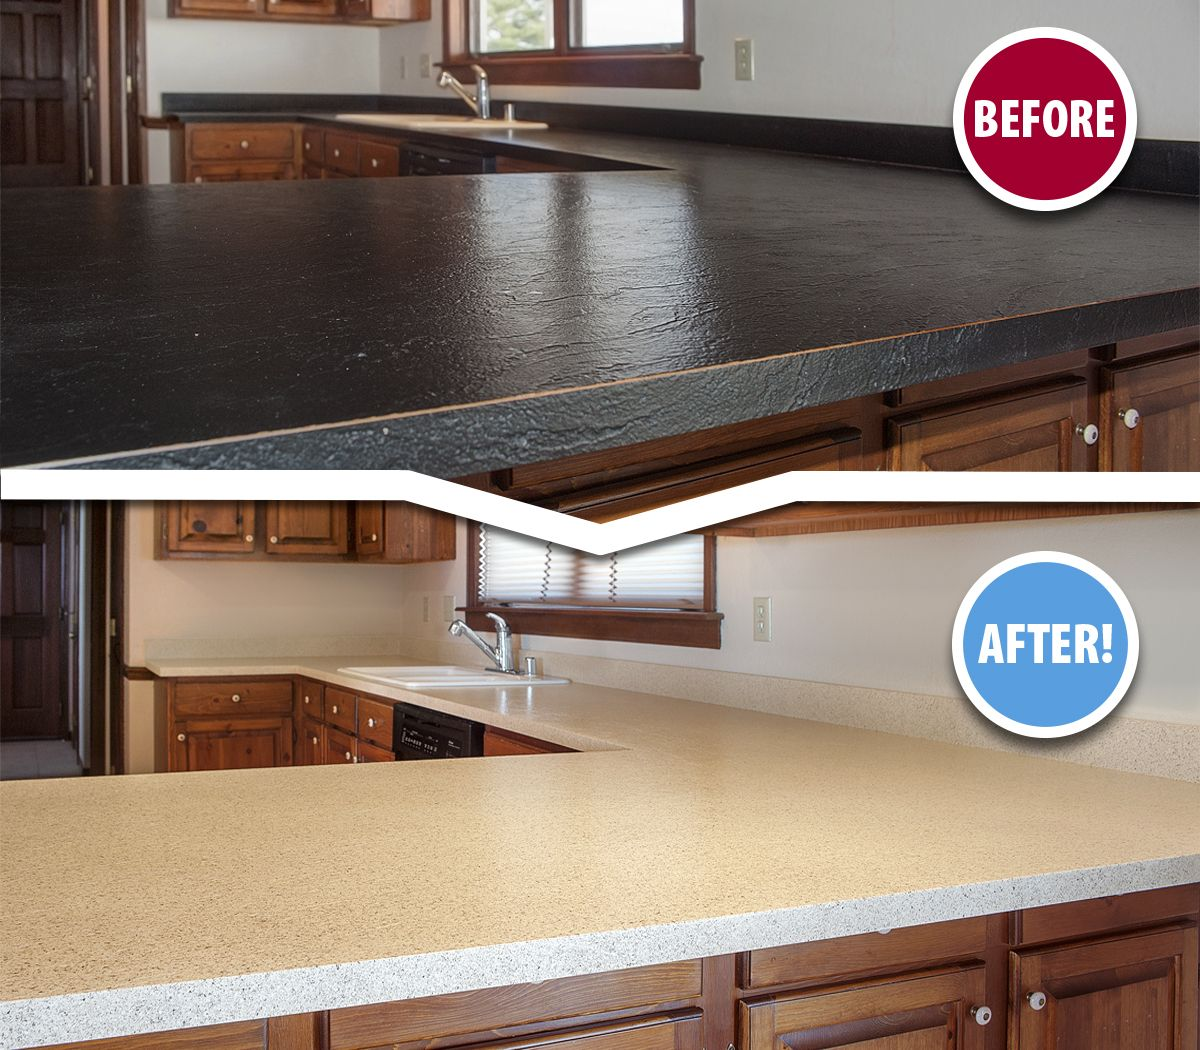 If Your Outdated Kitchen Countertops Have Become An Eyesore You Owe It To Yourself To Learn More About The T Refinish Countertops Countertops Tile Refinishing